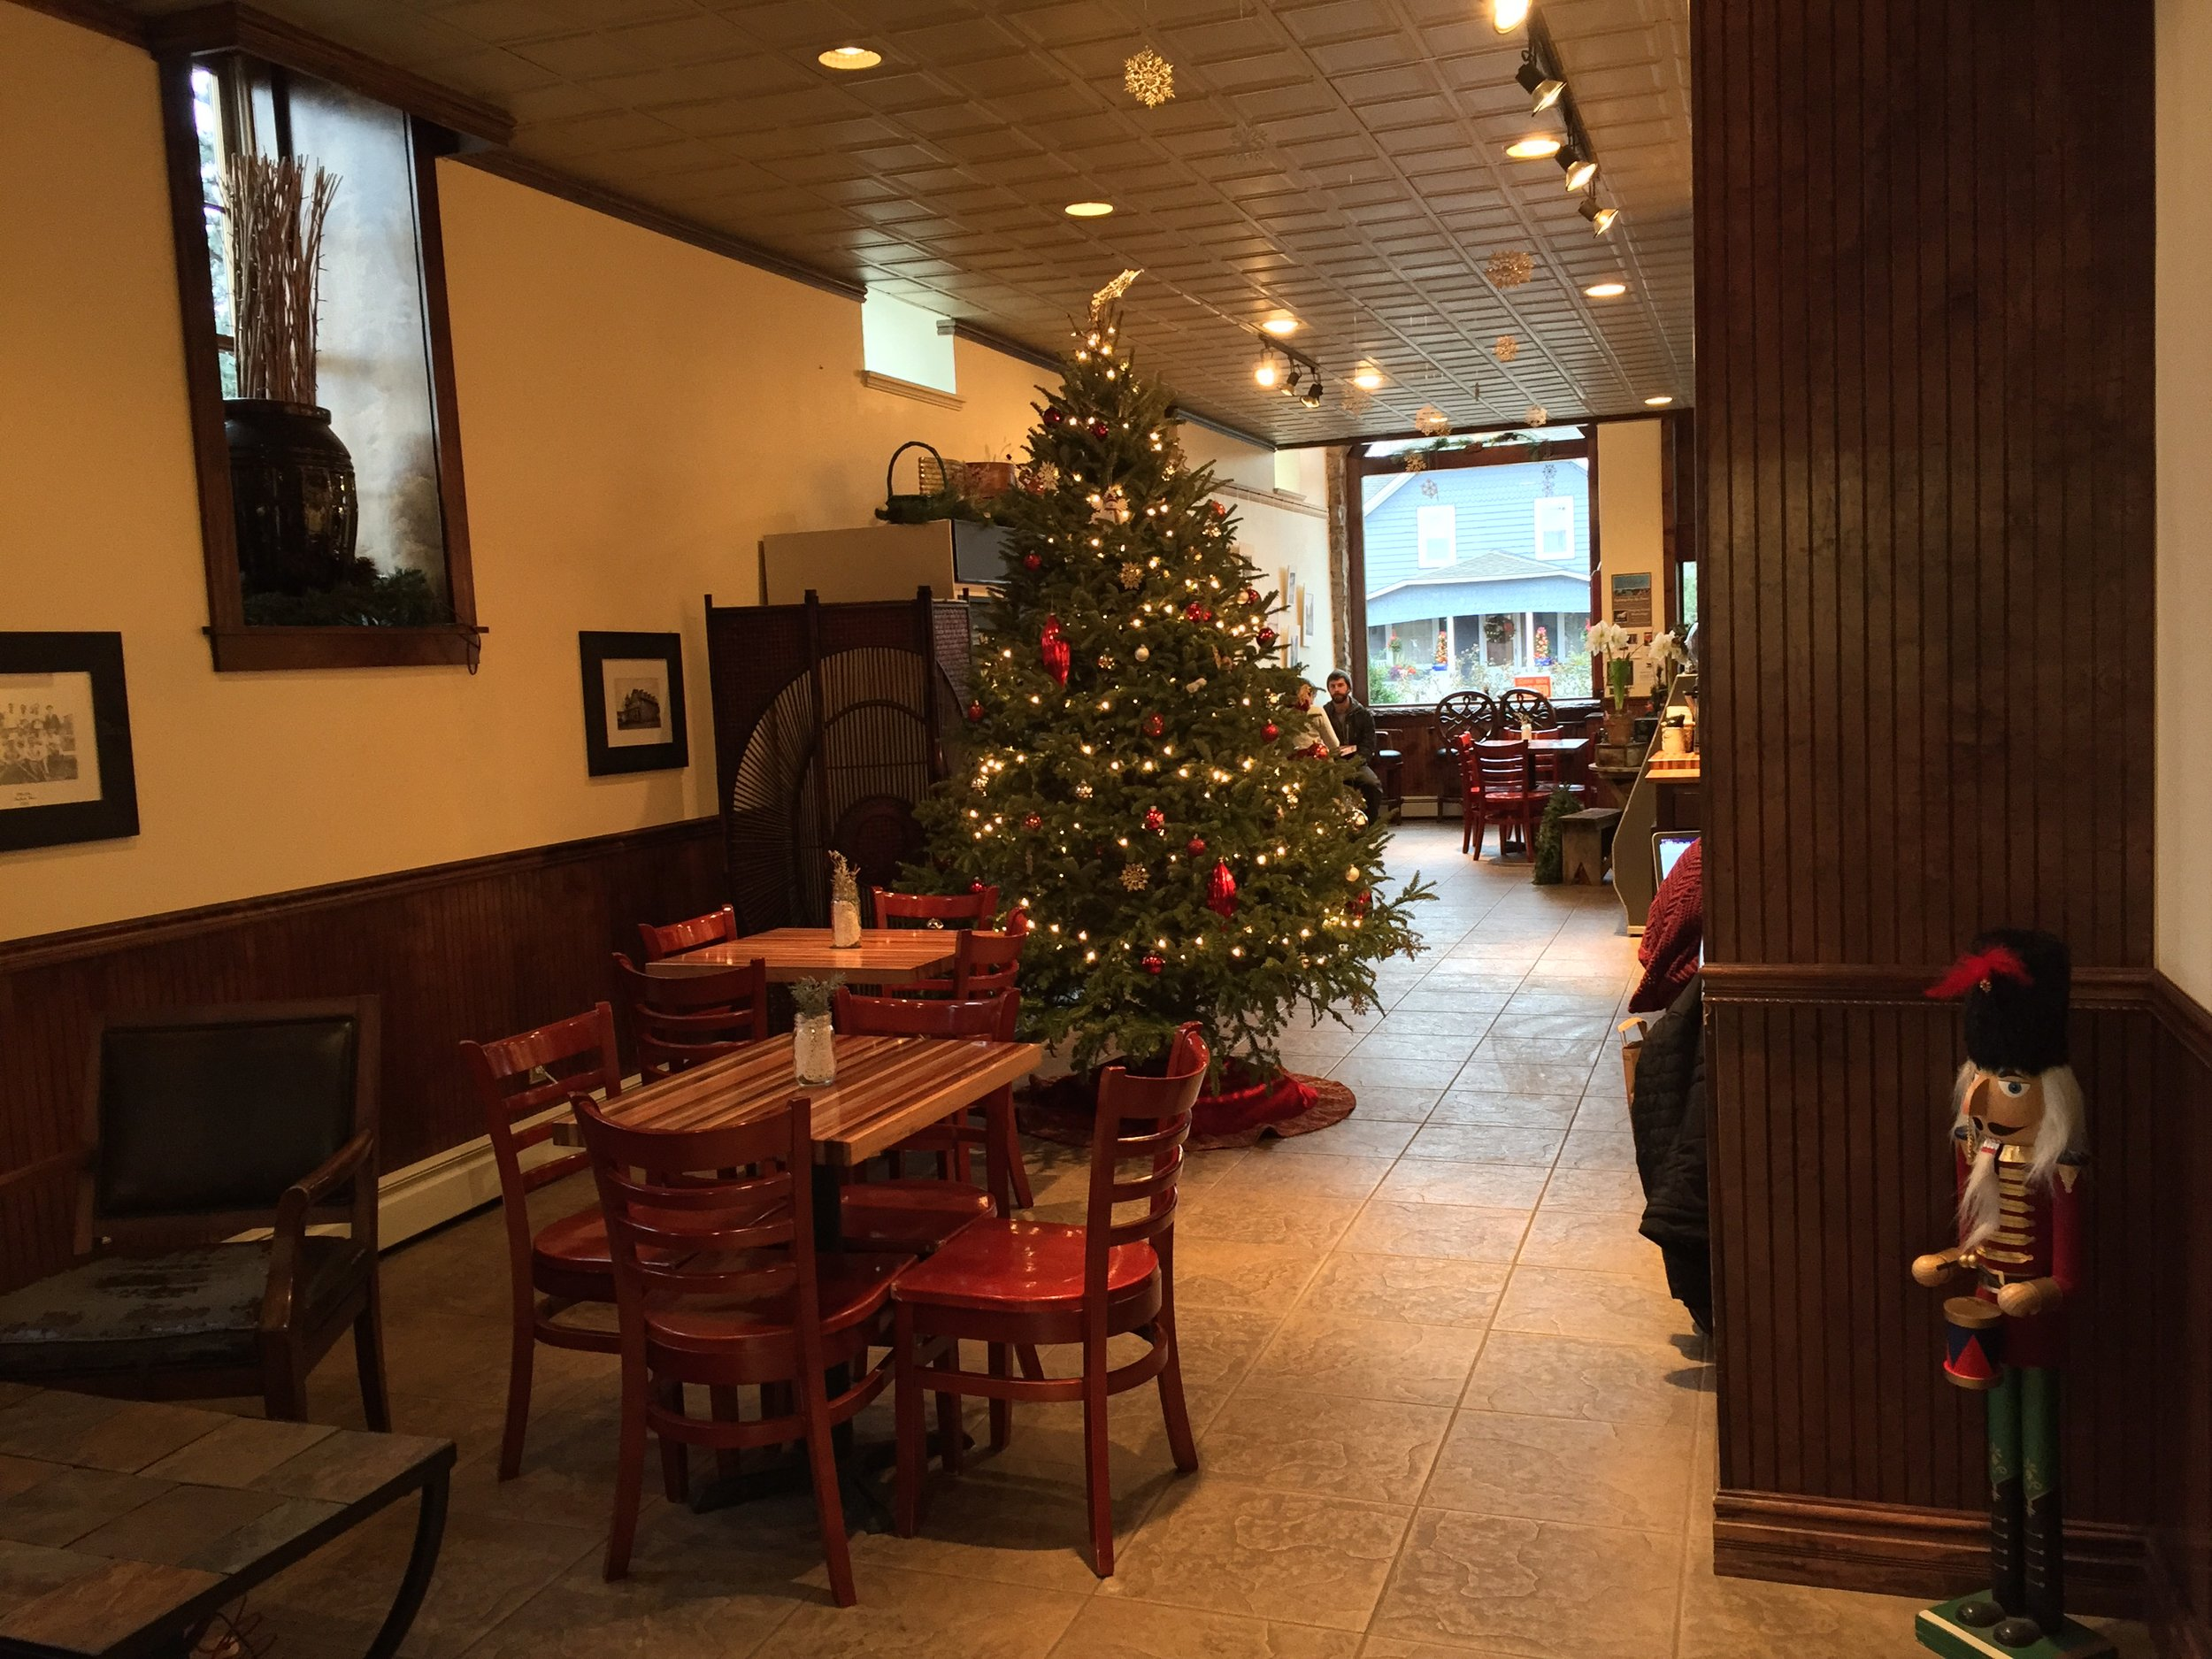 Brig O'Doon is decked out for the holidays. This view greets visitors if they come in from the back entrance.